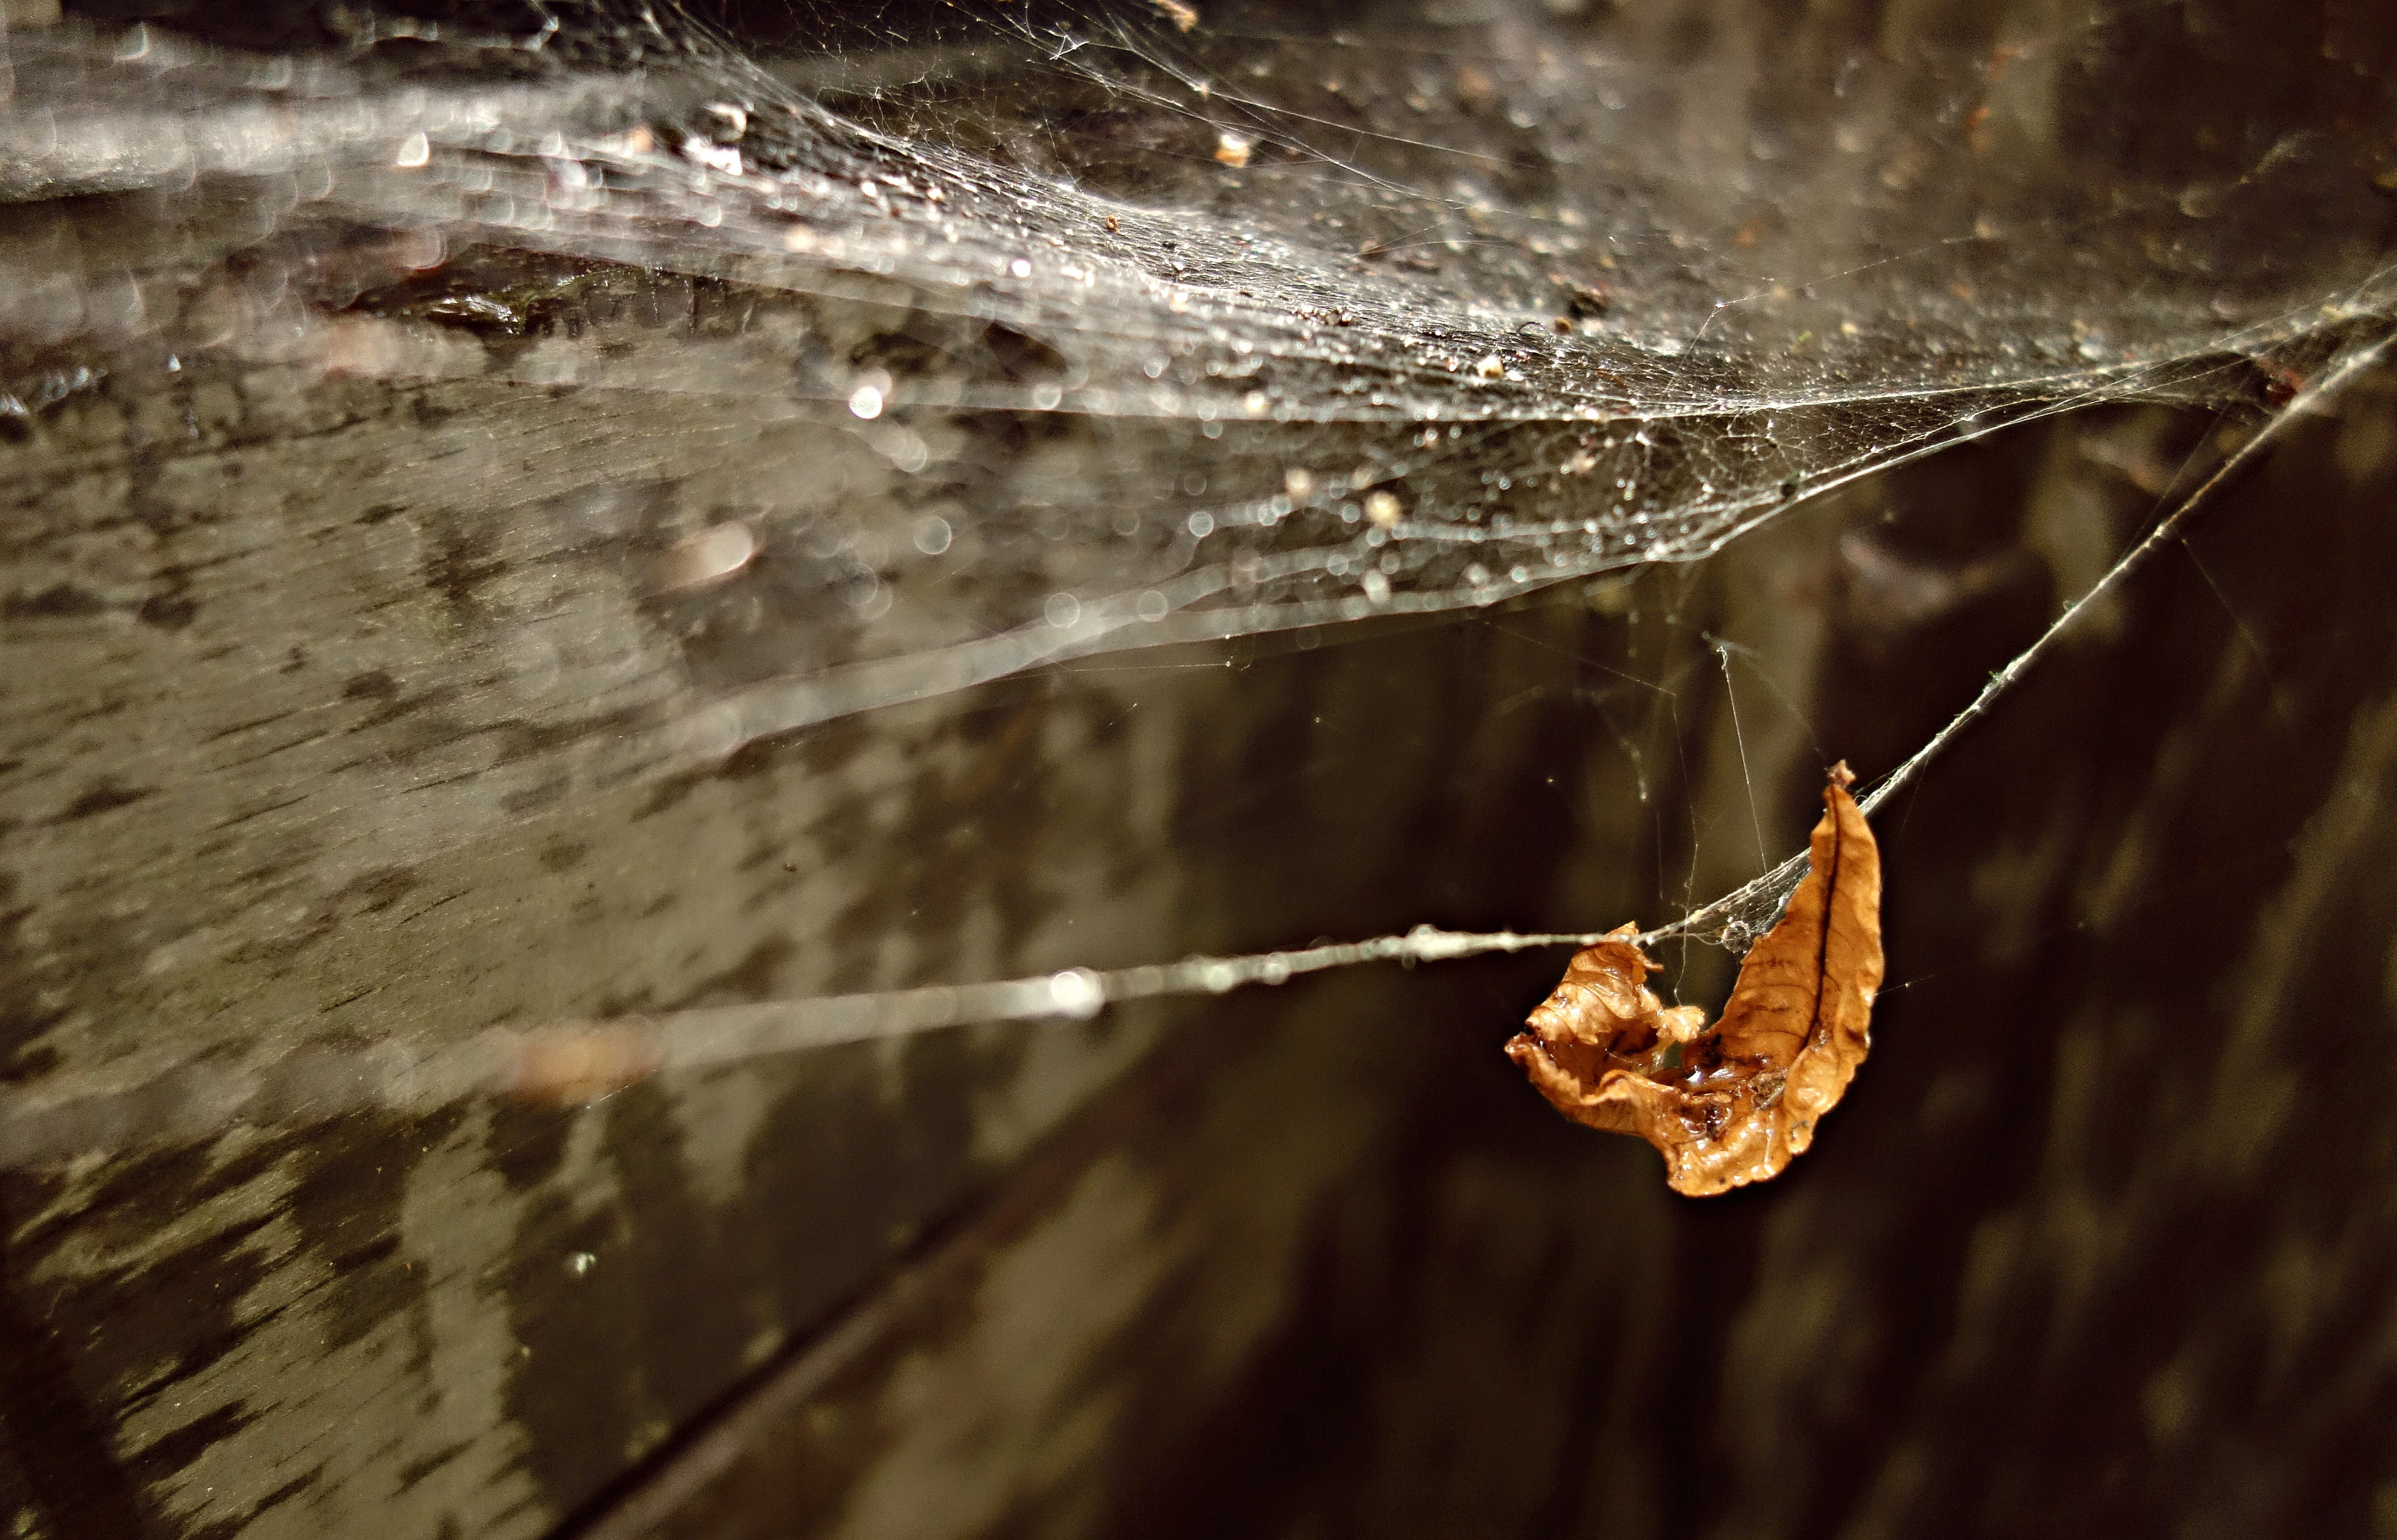 Free stock photo of web, drop, spider web, water drop